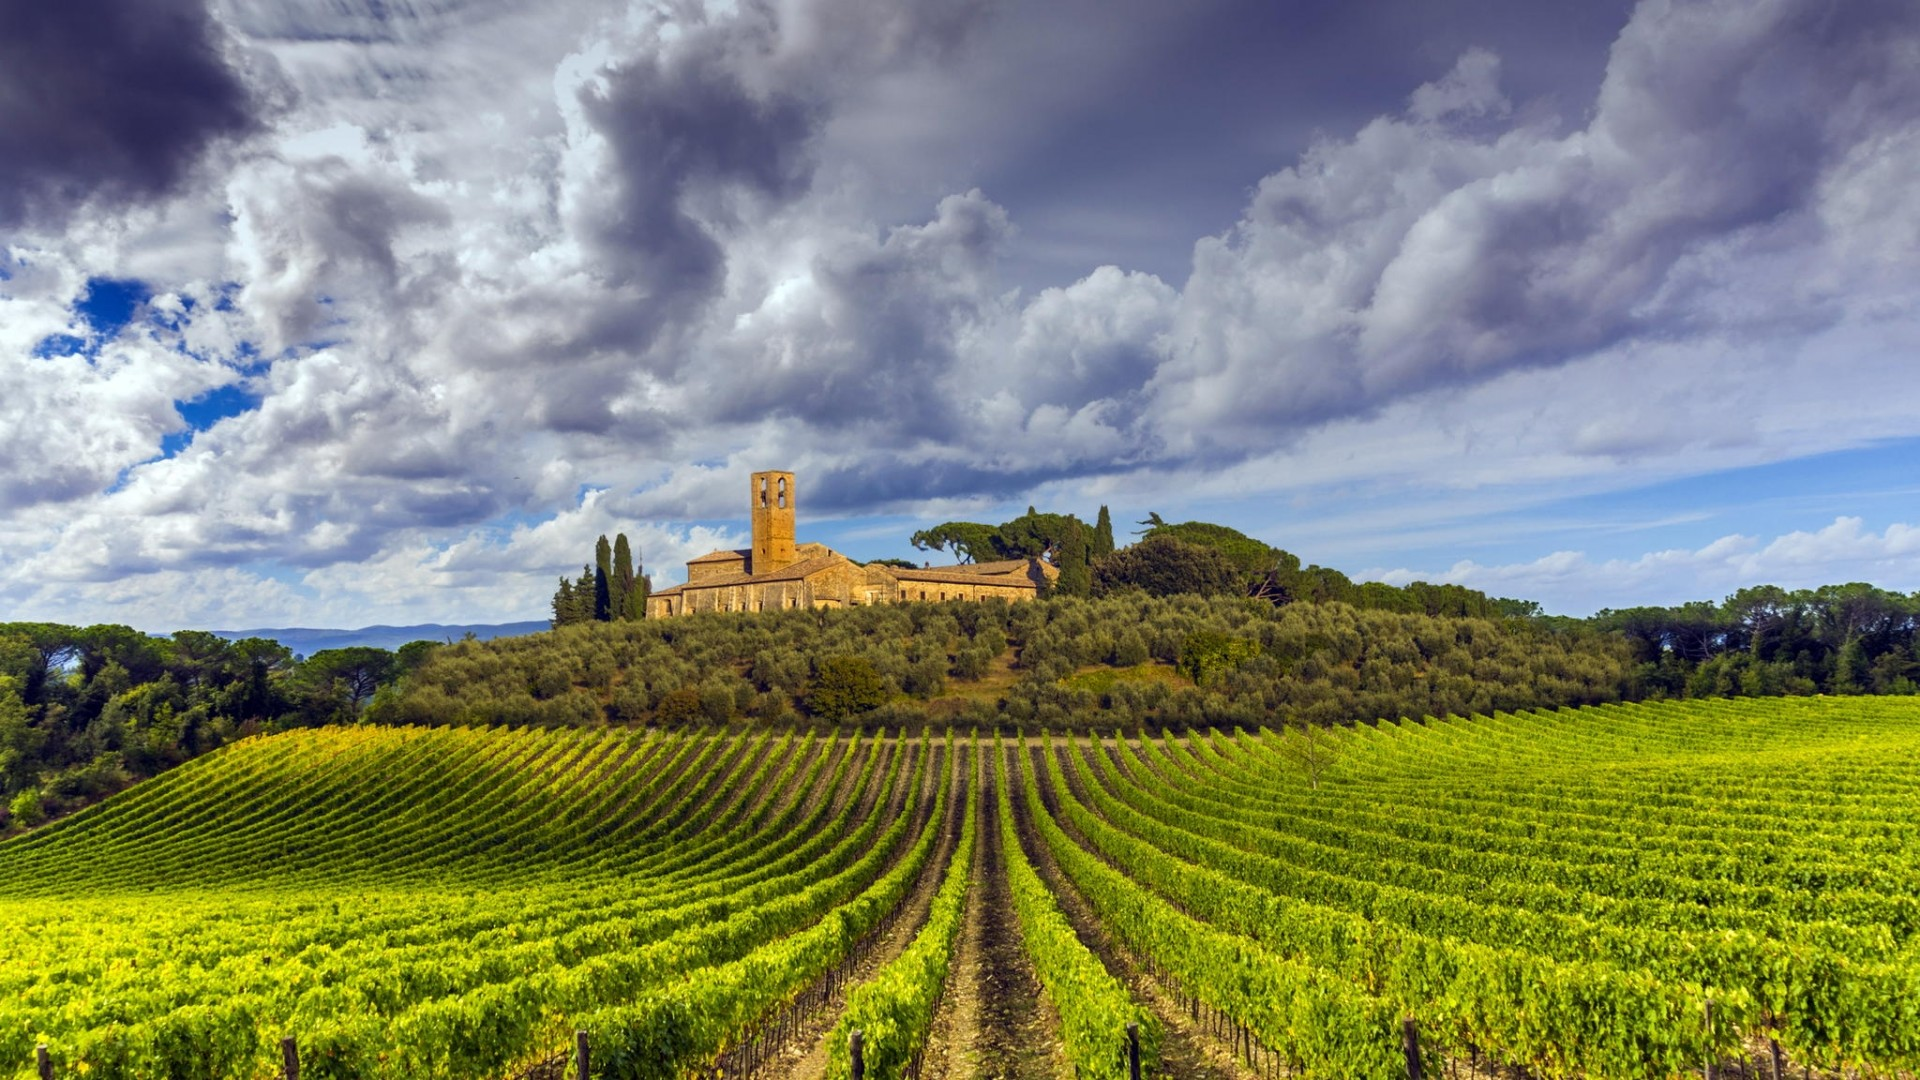 1920x1080 Tuscany Vineyard wallpaper 2048x1536. Download resolutions: Desktop:   ...